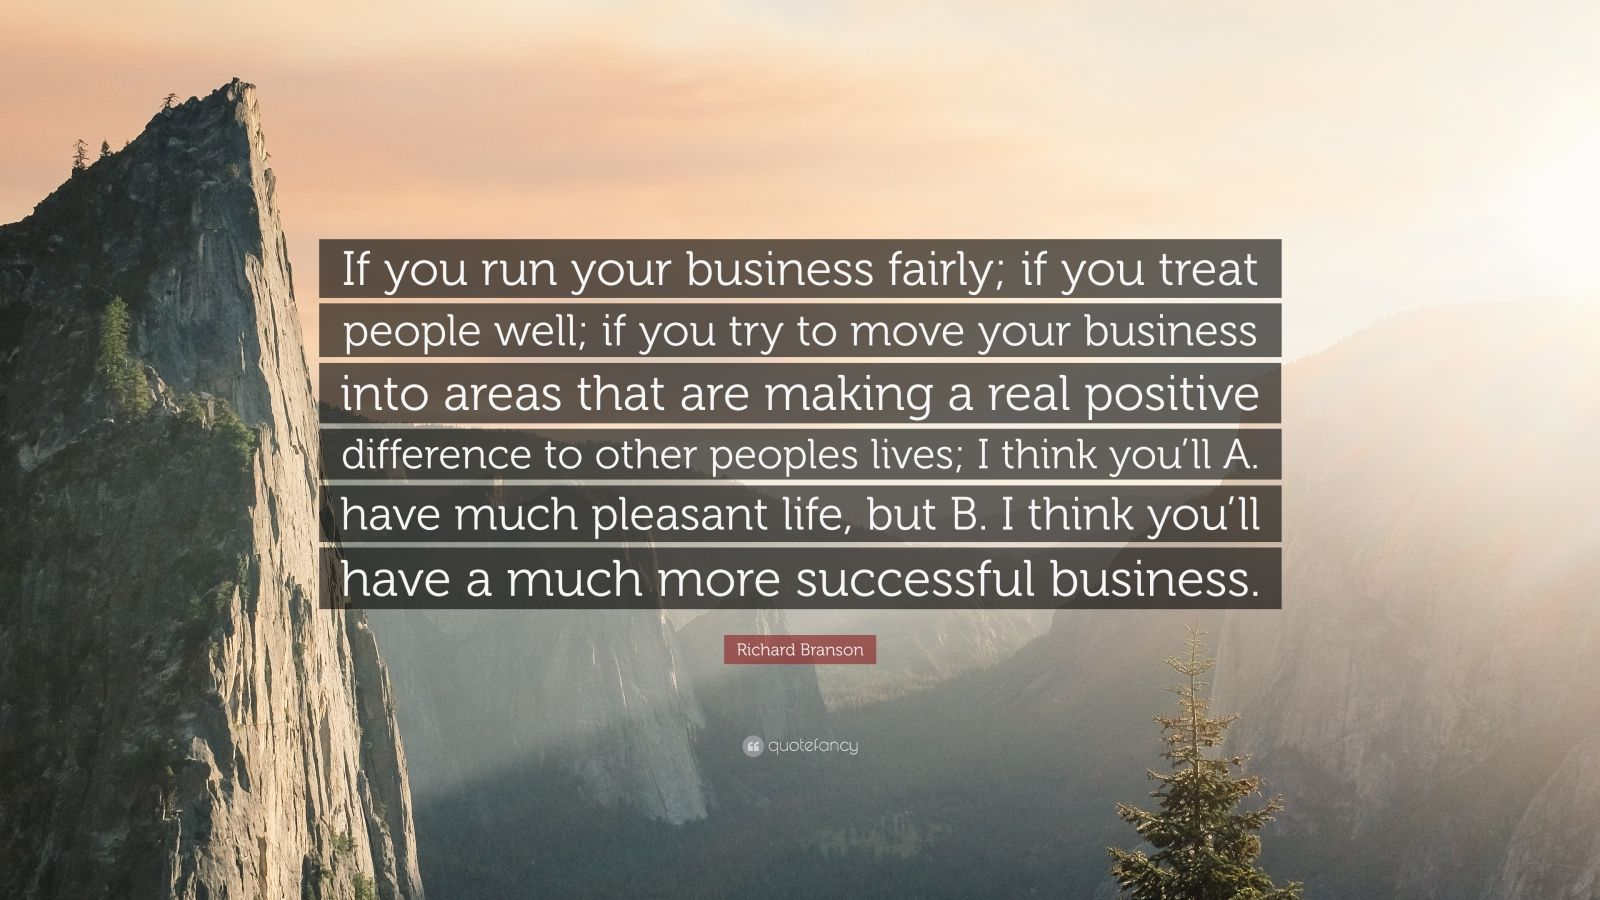 """Richard Branson Quote: """"If you run your business fairly; if you treat people well; if you try to move your business into areas that are making a real positive difference to other peoples lives; I think you'll A. have much pleasant life, but B. I think you'll have a much more successful business."""""""